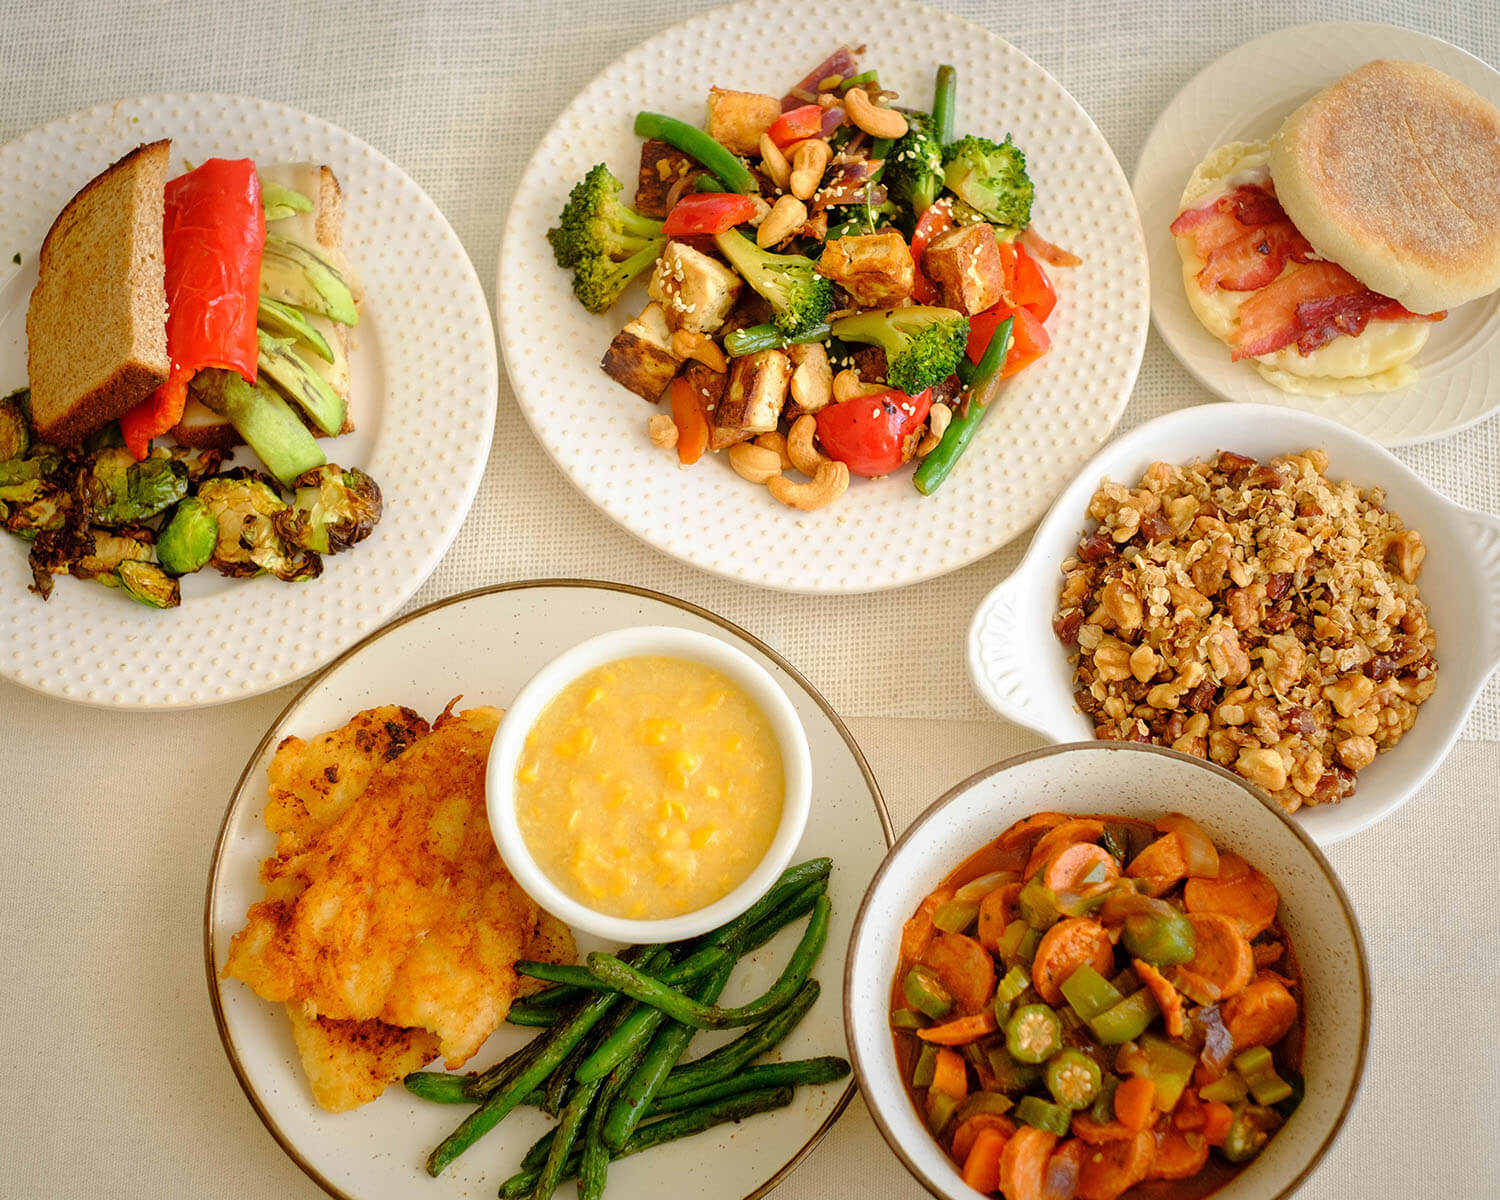 Weekly Meal Plan for the Week of March 01, 2021